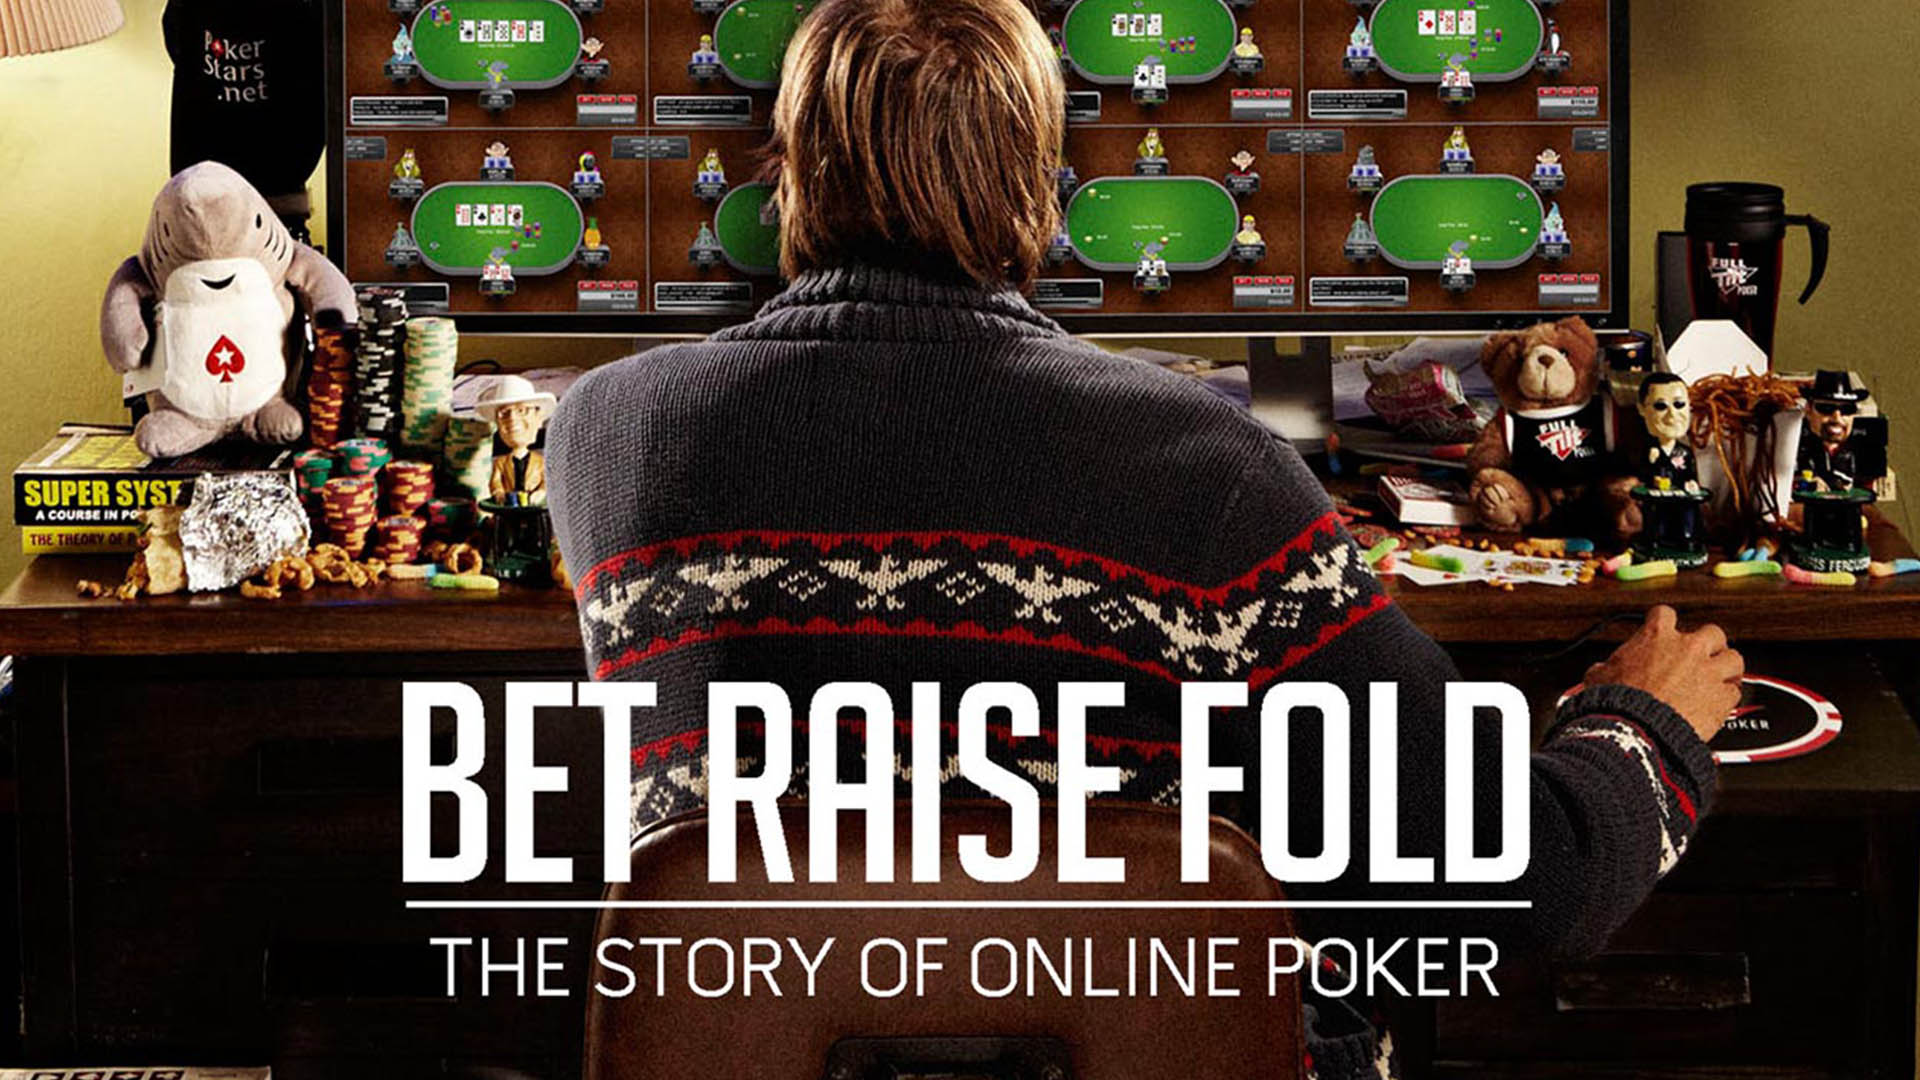 life on the line sports betting documentary films